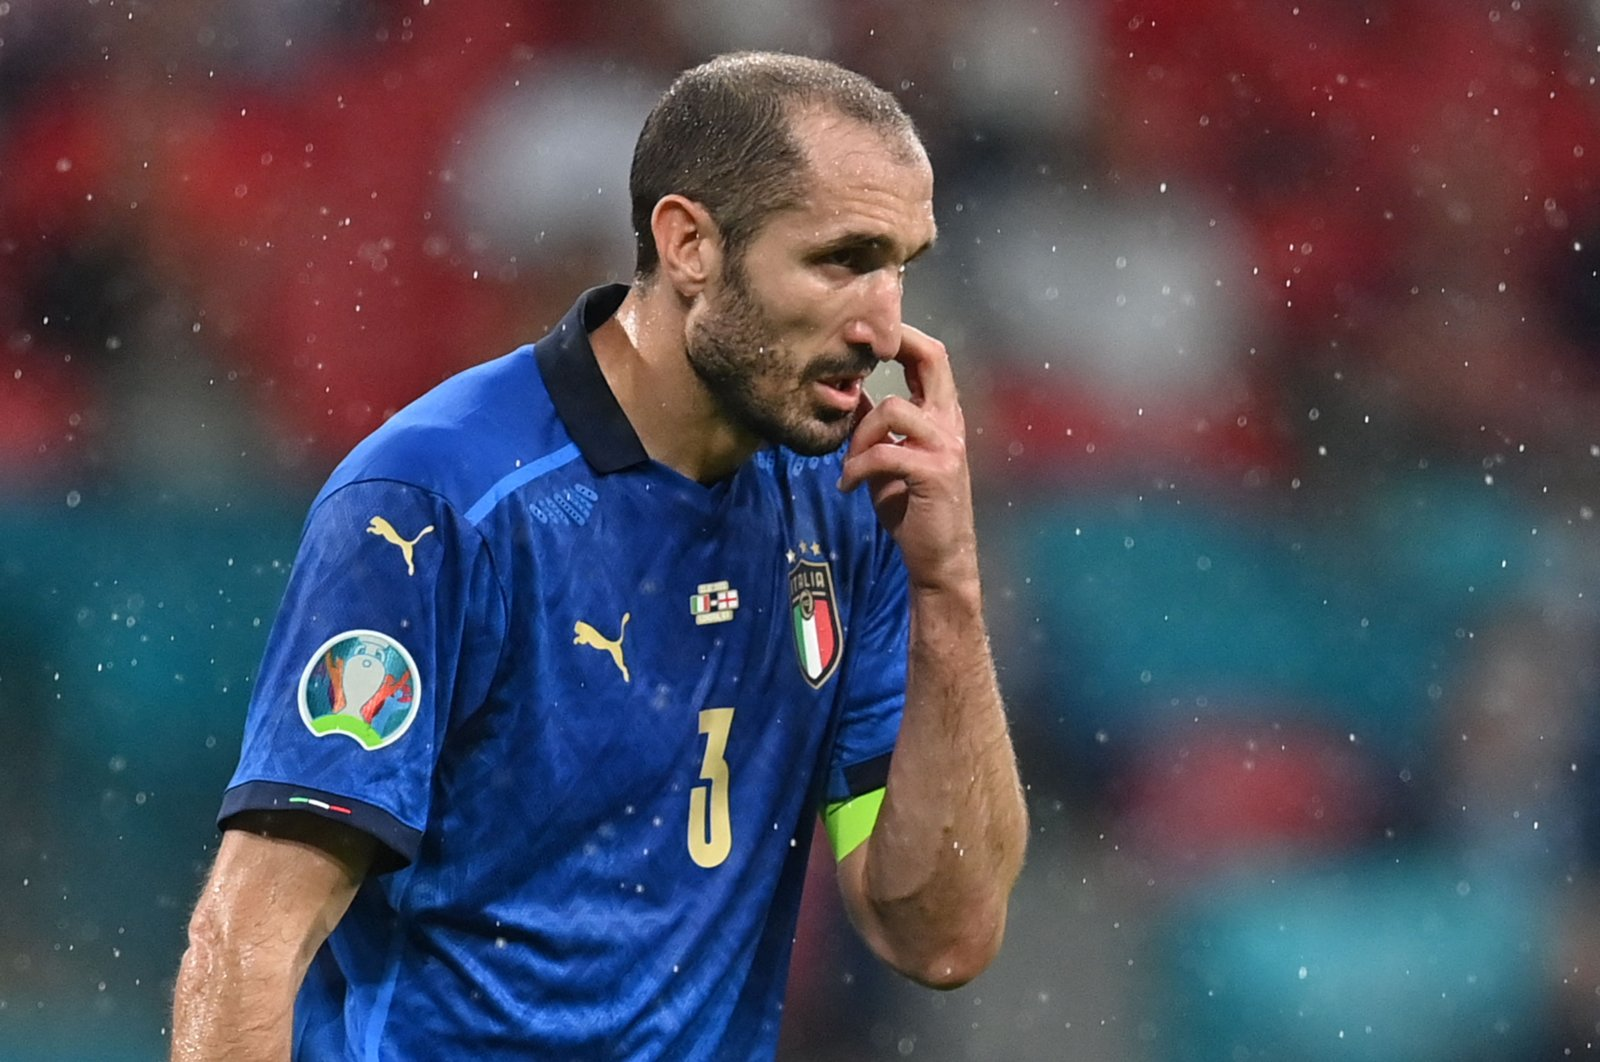 Italy's defender Giorgio Chiellini reacts during the UEFA EURO 2020 final against England at the Wembley Stadium, London, England, July 11, 2021. (AFP Photo)